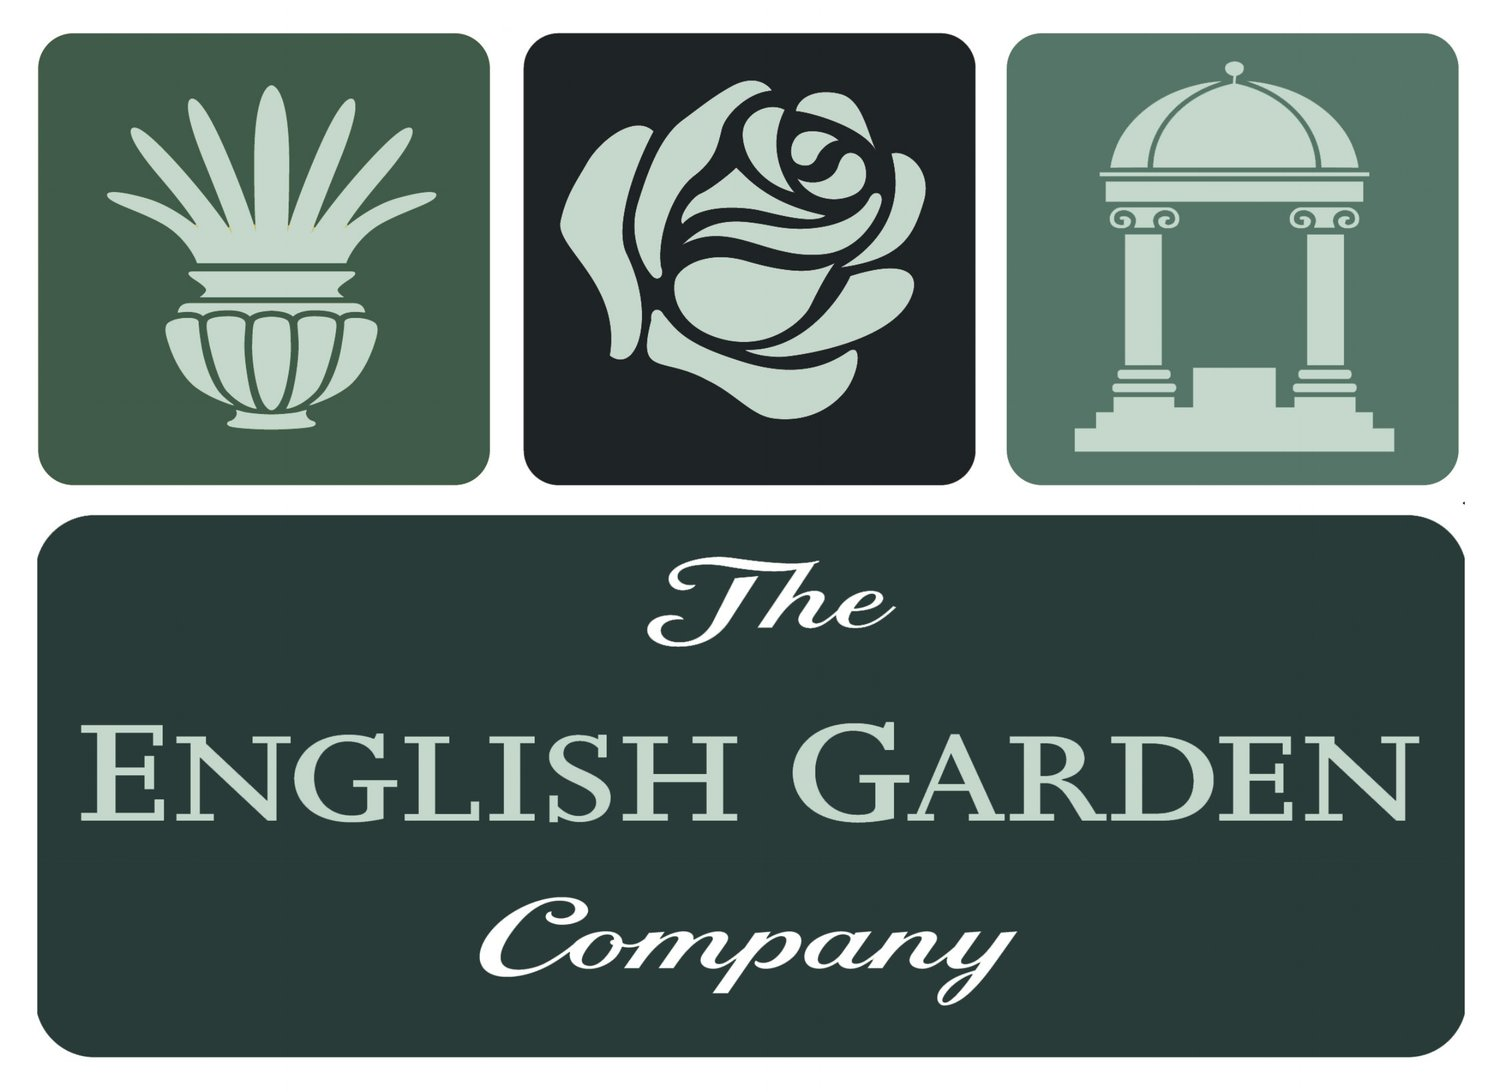 The English Garden Company